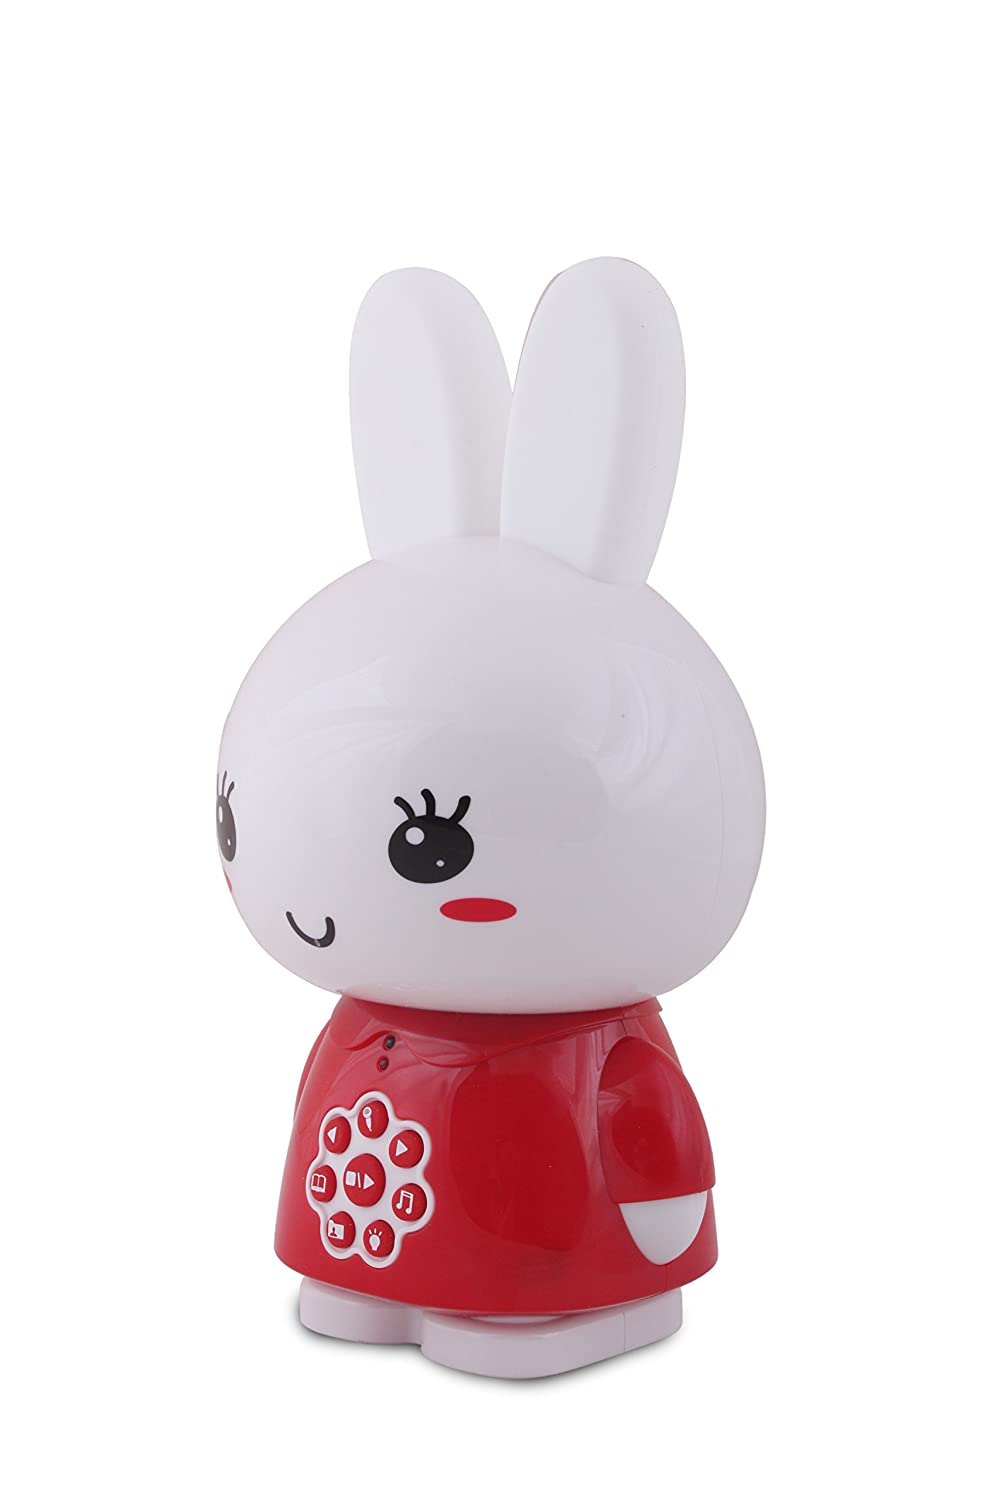 Alilo G6 Honey Bunny 4GB Childrens Digital Player Red